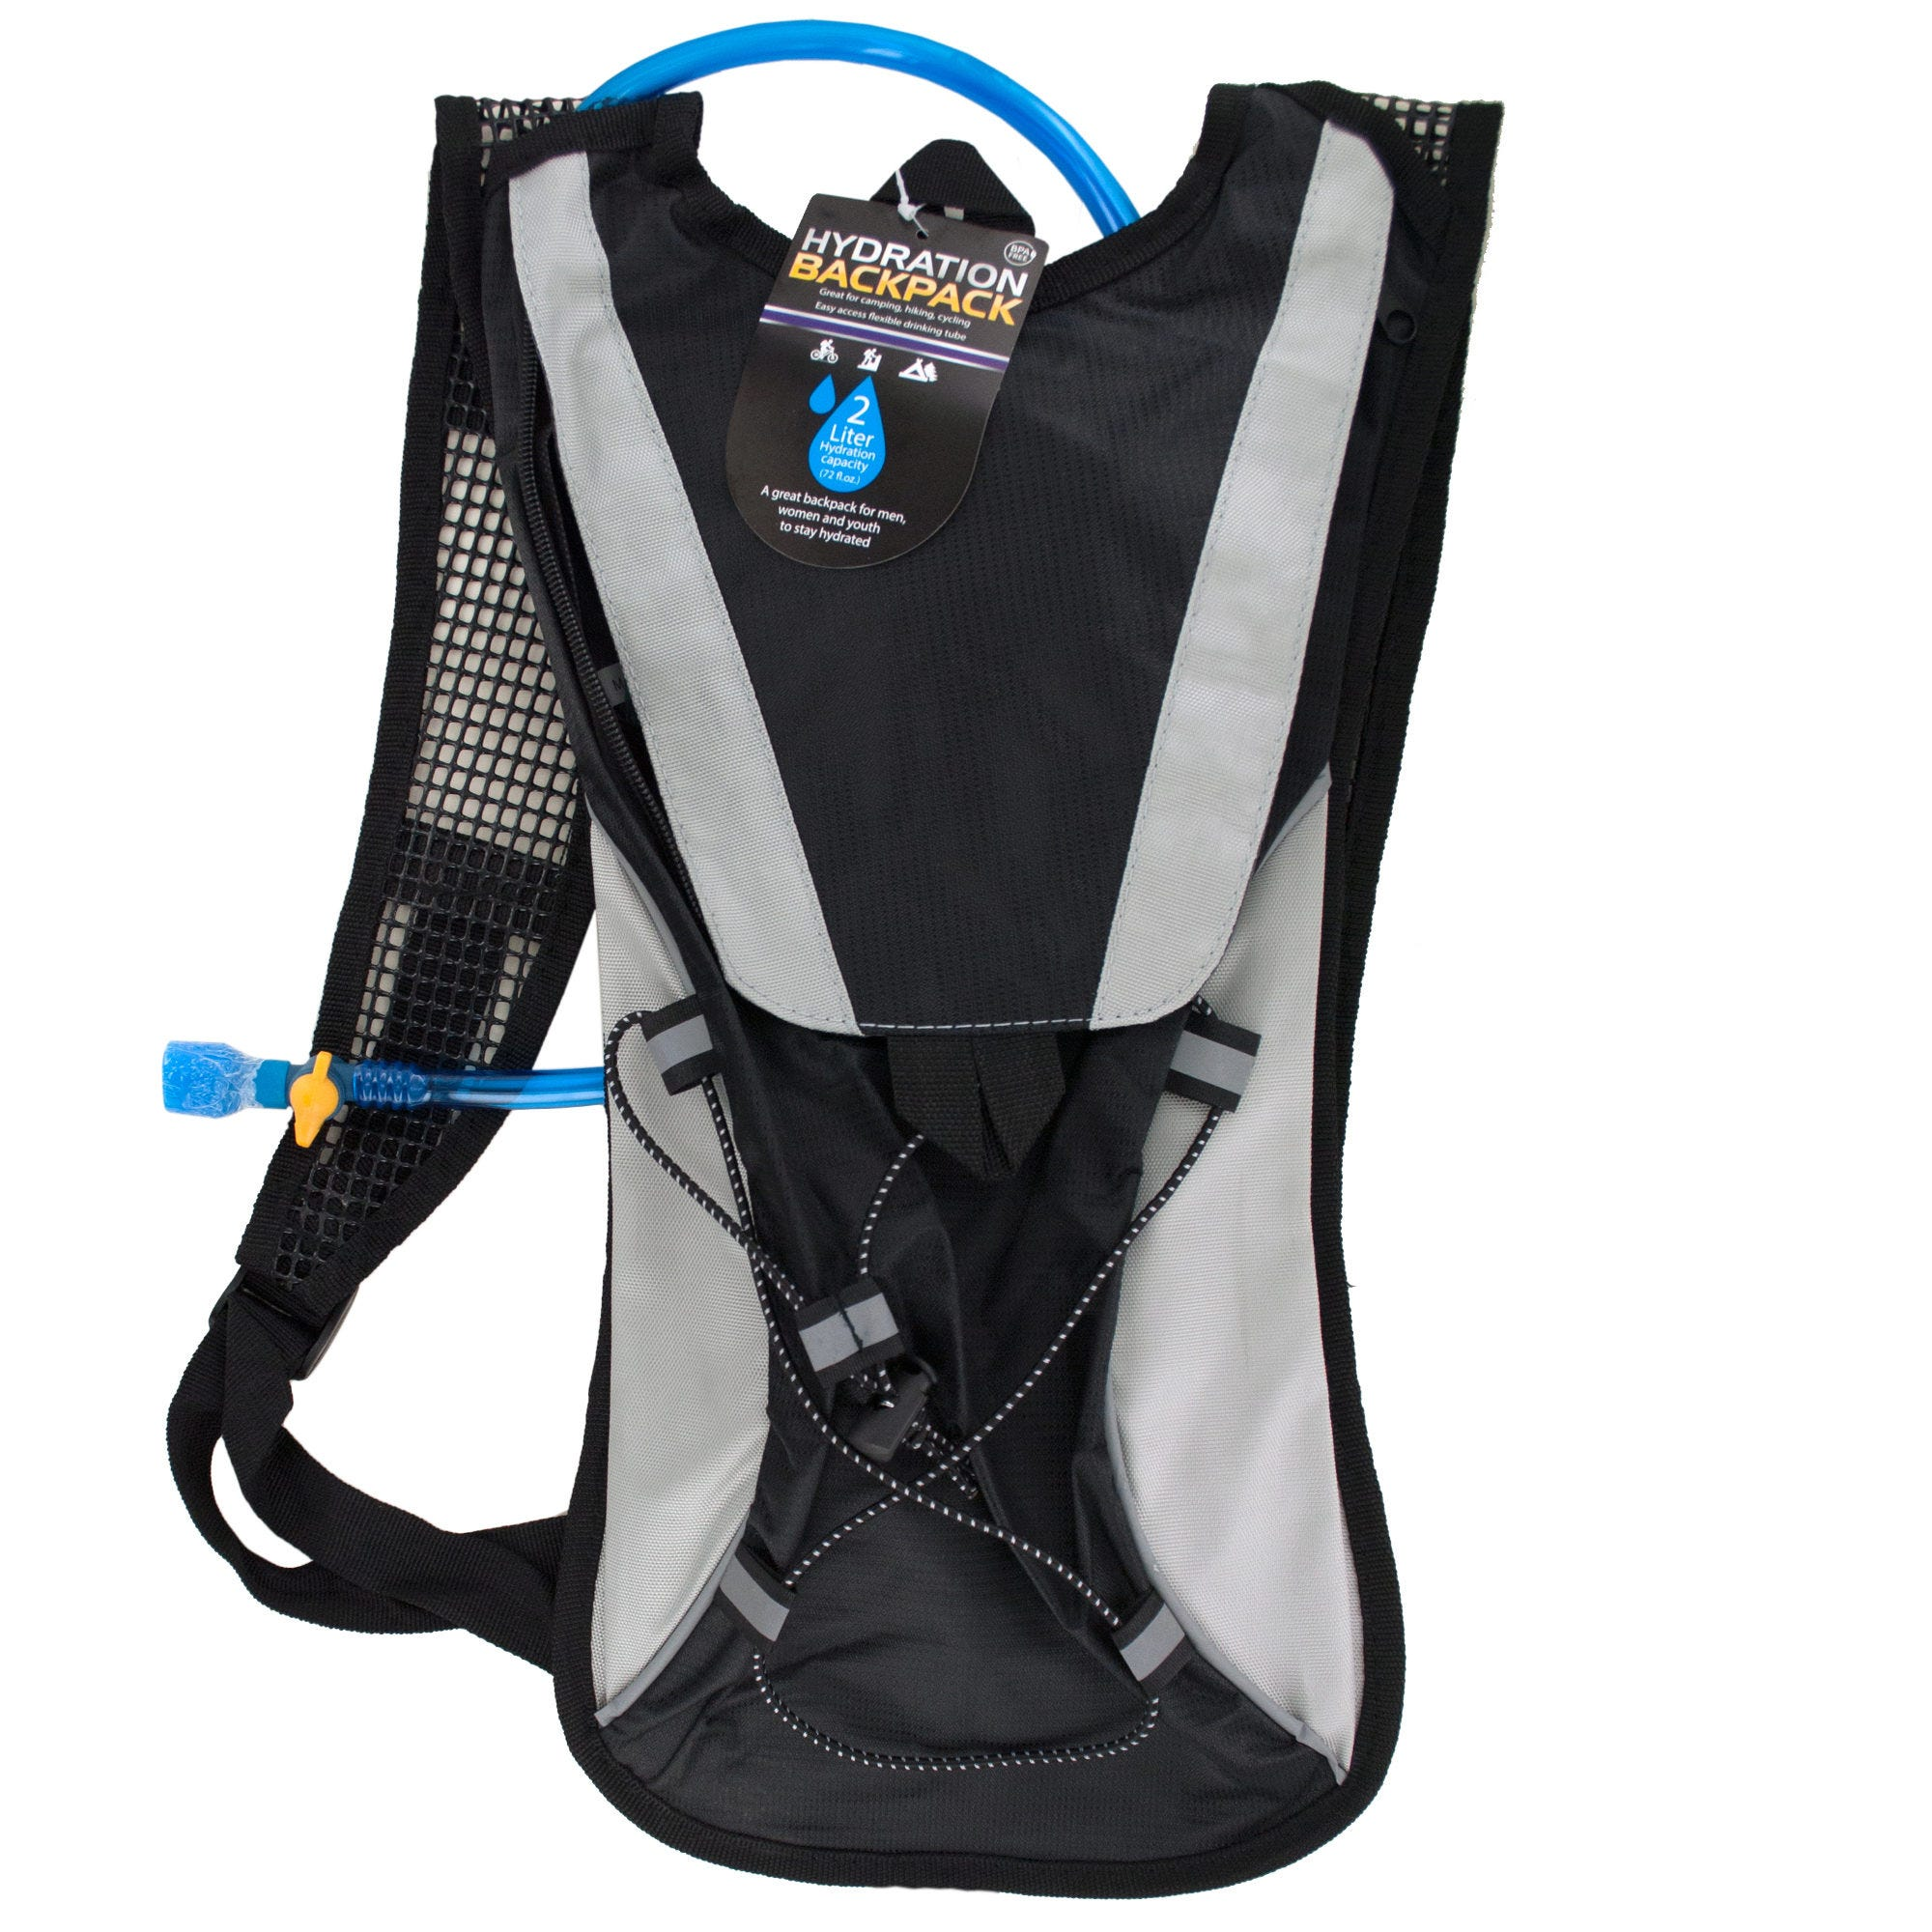 2 Liter Hydration Backpack with Flexible Drinking Tube- Qty 2